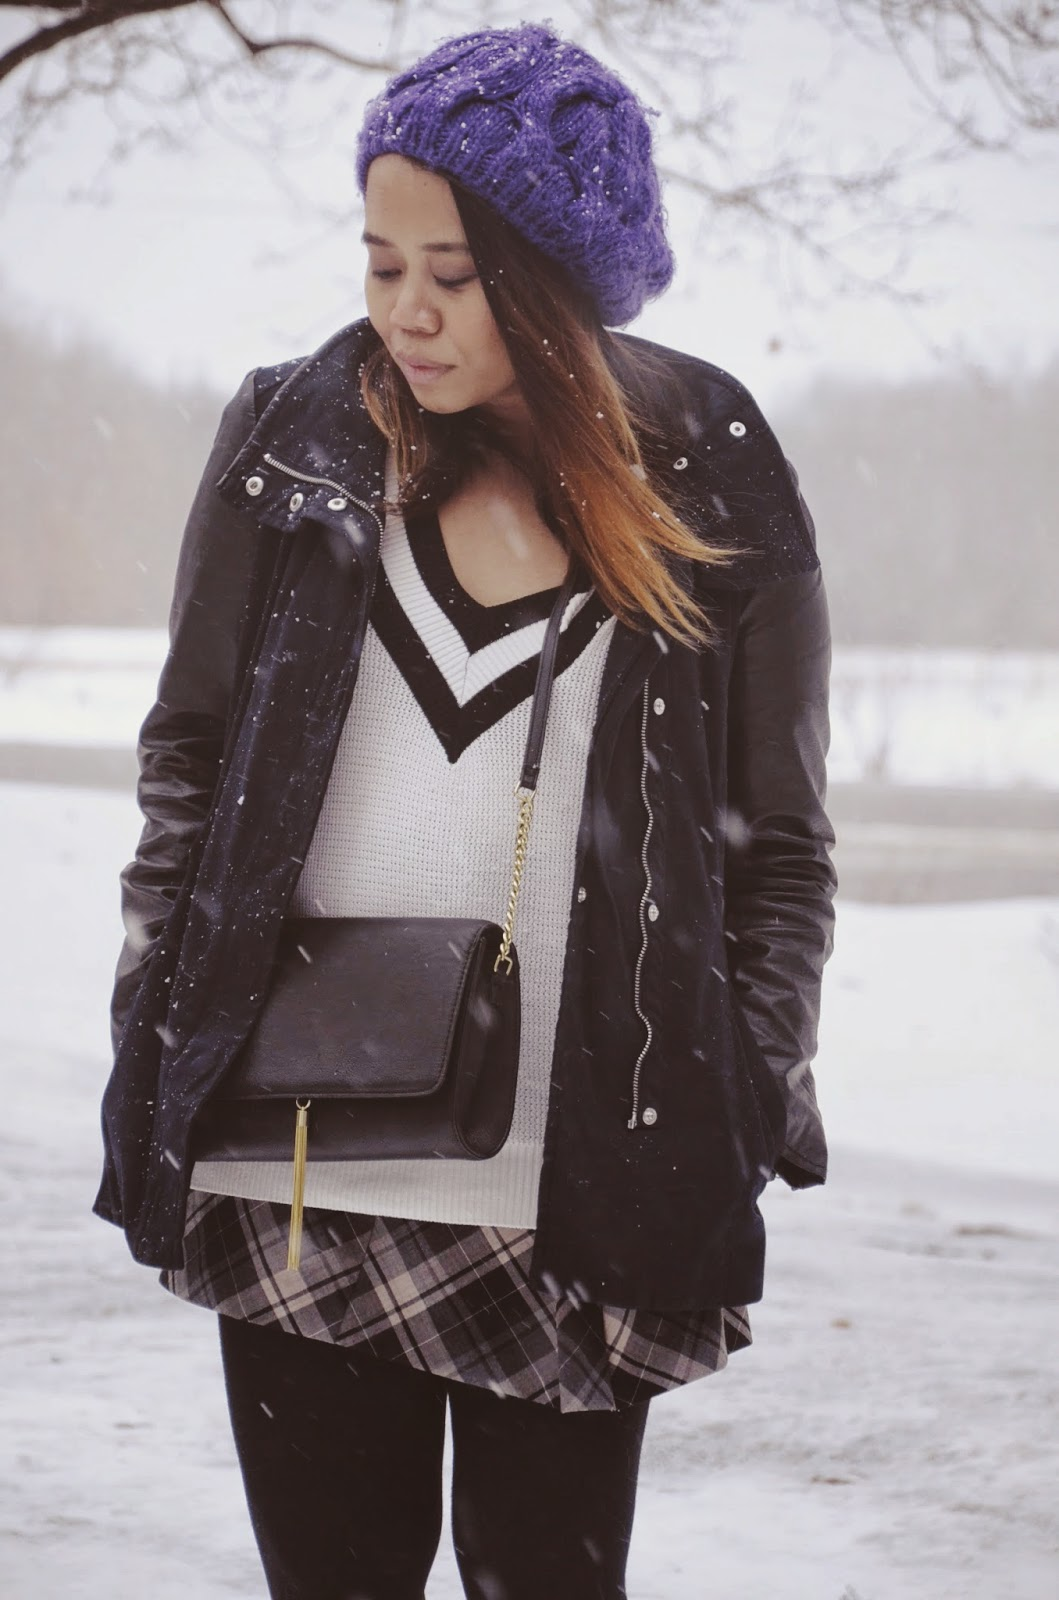 express tartan miniskirt, hm leather parka, hm chain crossbody, nordstrom rack booties